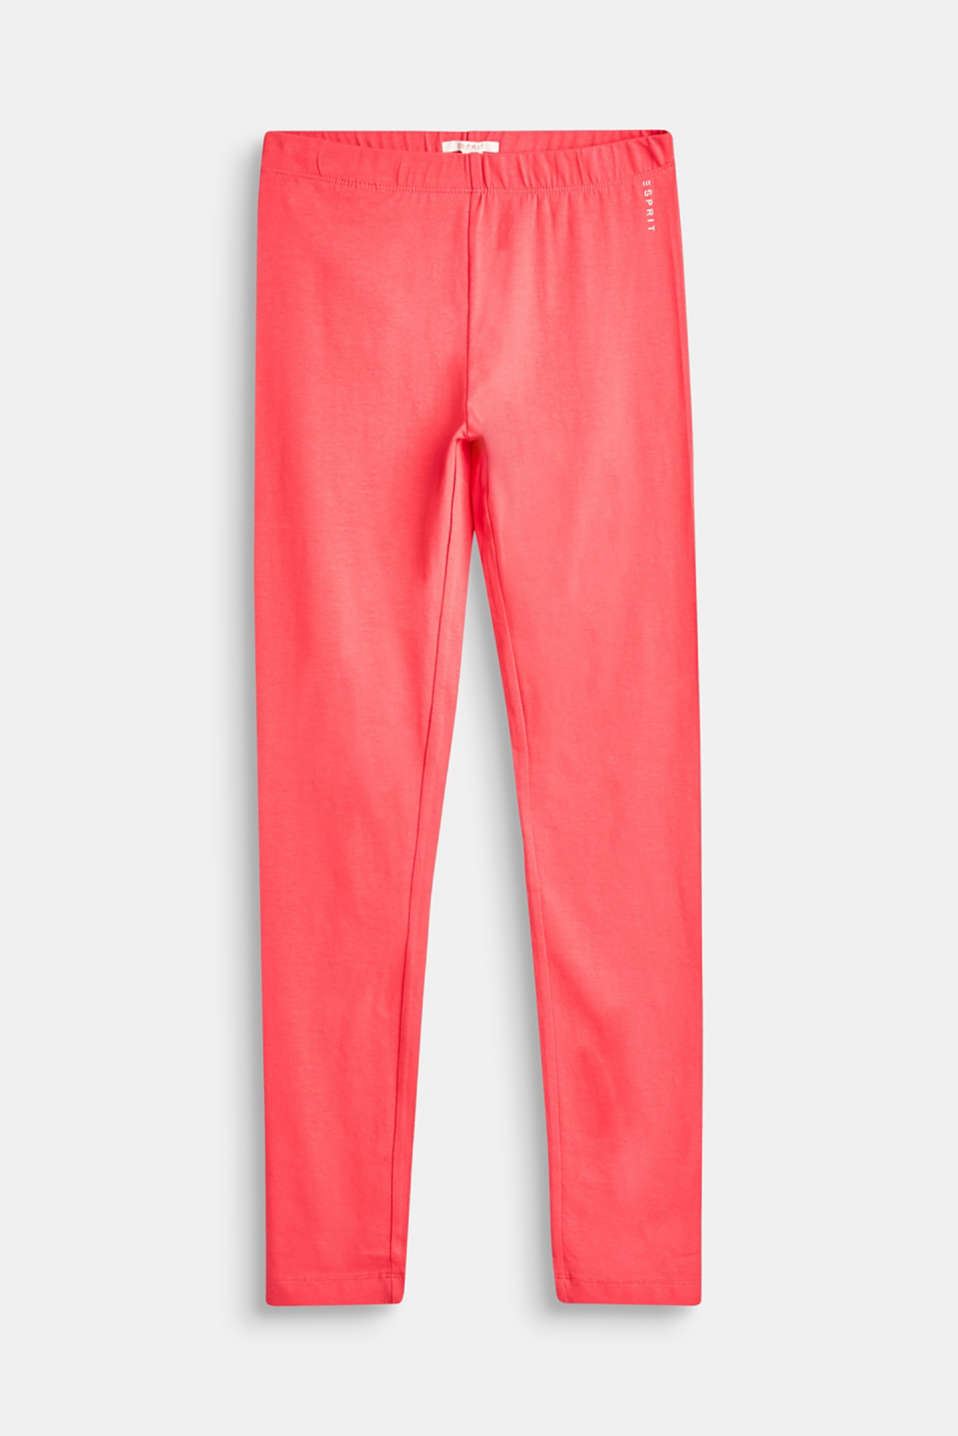 Esprit - Basic leggings in stretch cotton